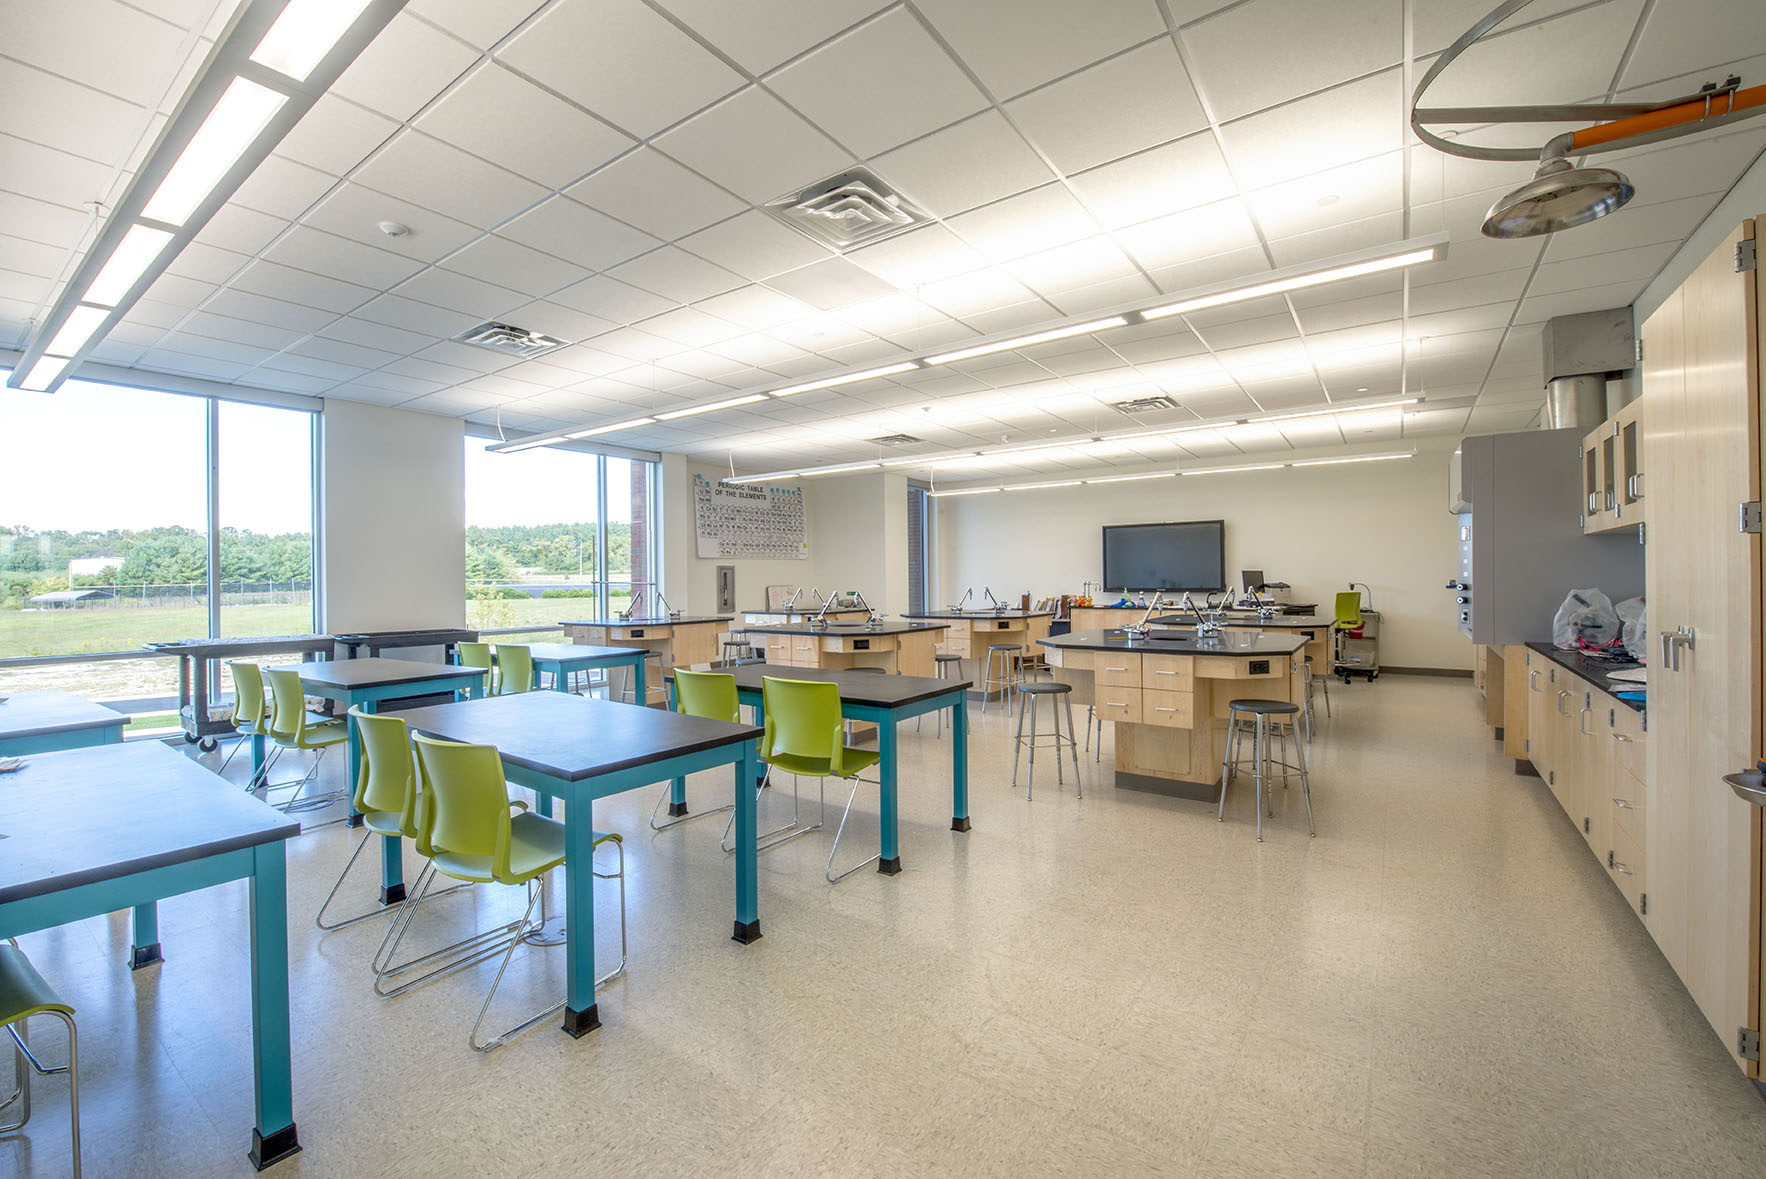 Innovative Classroom University ~ Innovative high school barnhill contracting company